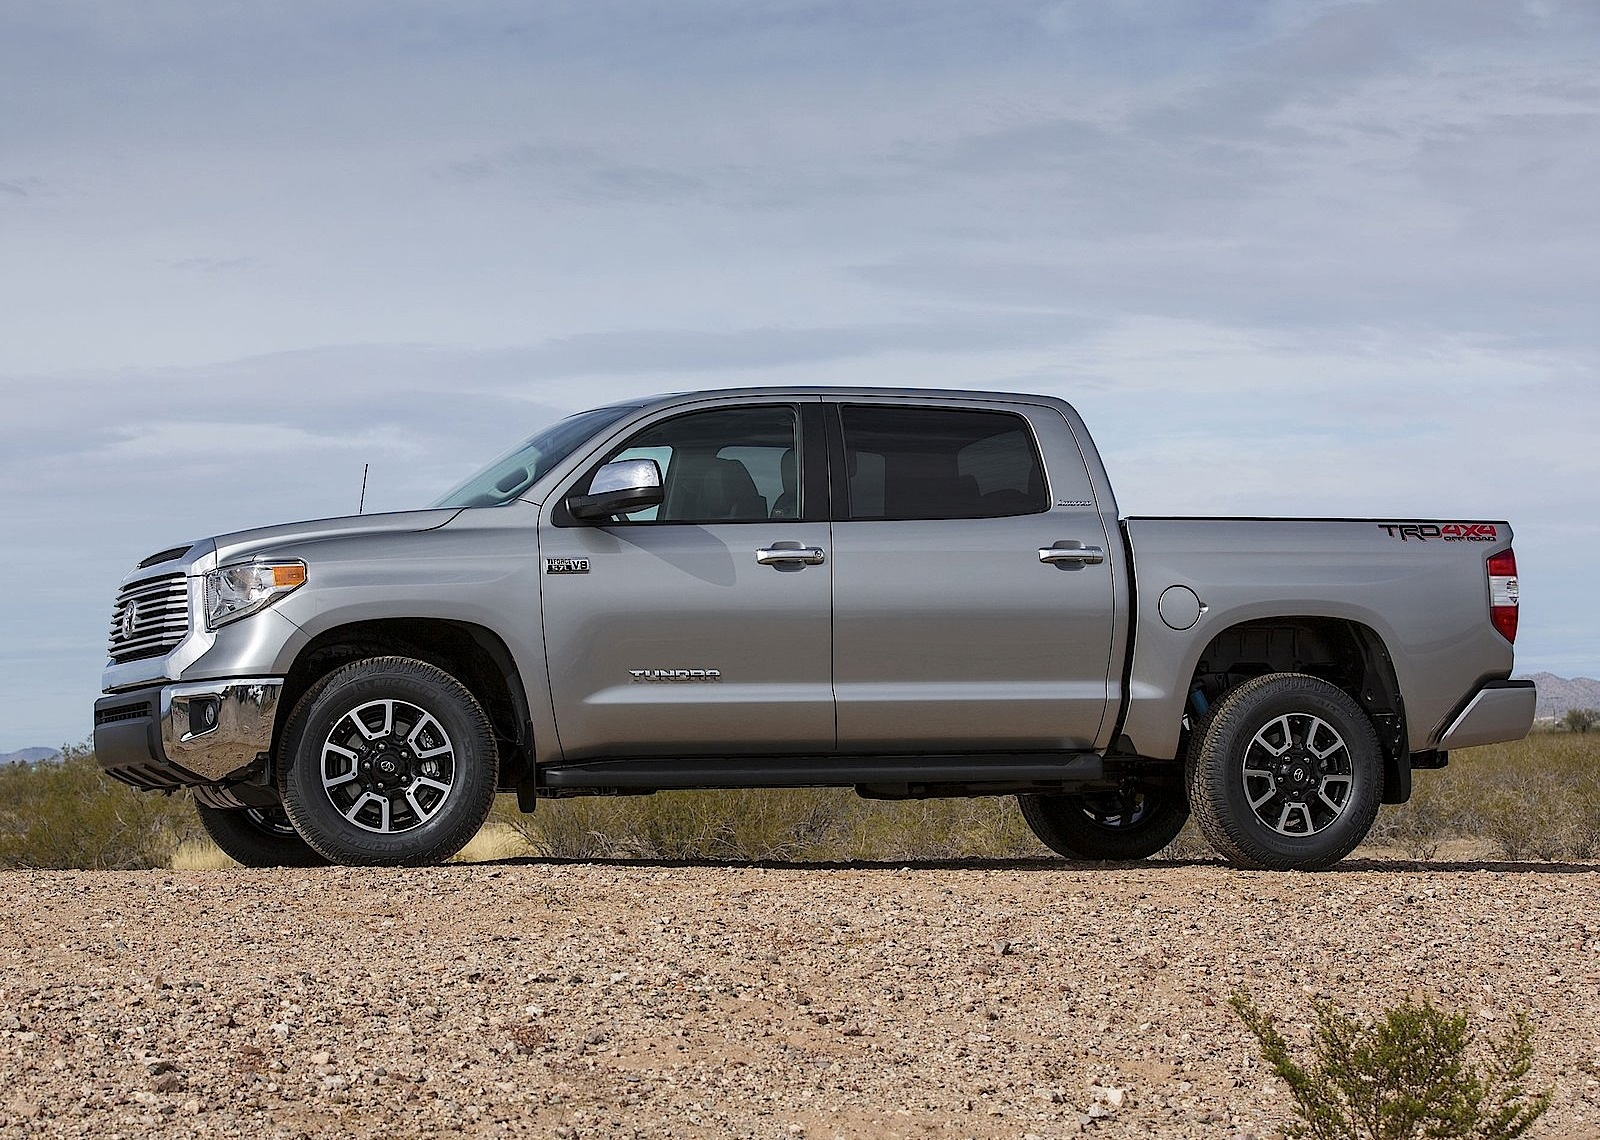 toyota tundra crew cab specs 2013 2014 2015 2016 2017 2018 autoevolution. Black Bedroom Furniture Sets. Home Design Ideas